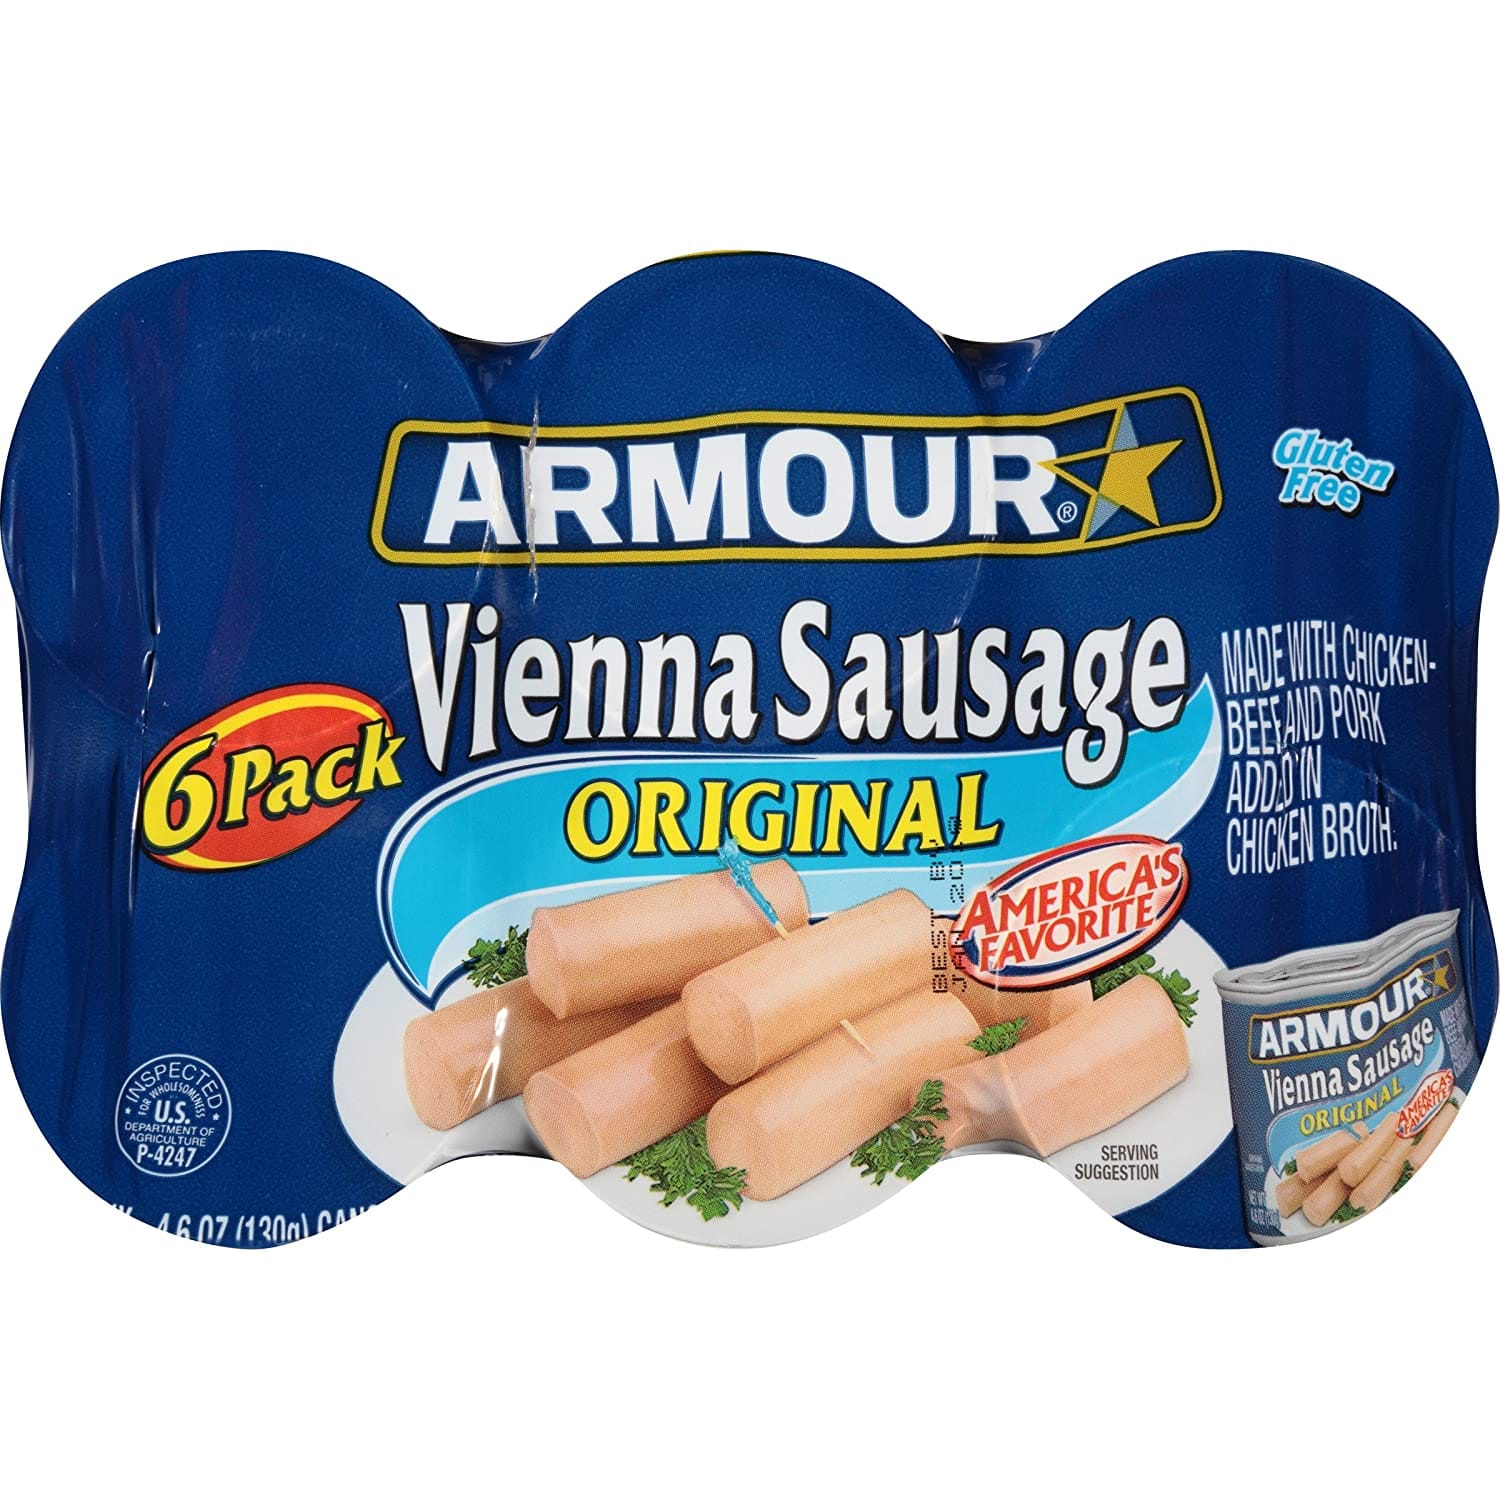 6 count Armour Vienna Sausage, Original, 4.6 Ounce: $2.98 + FS/Prime